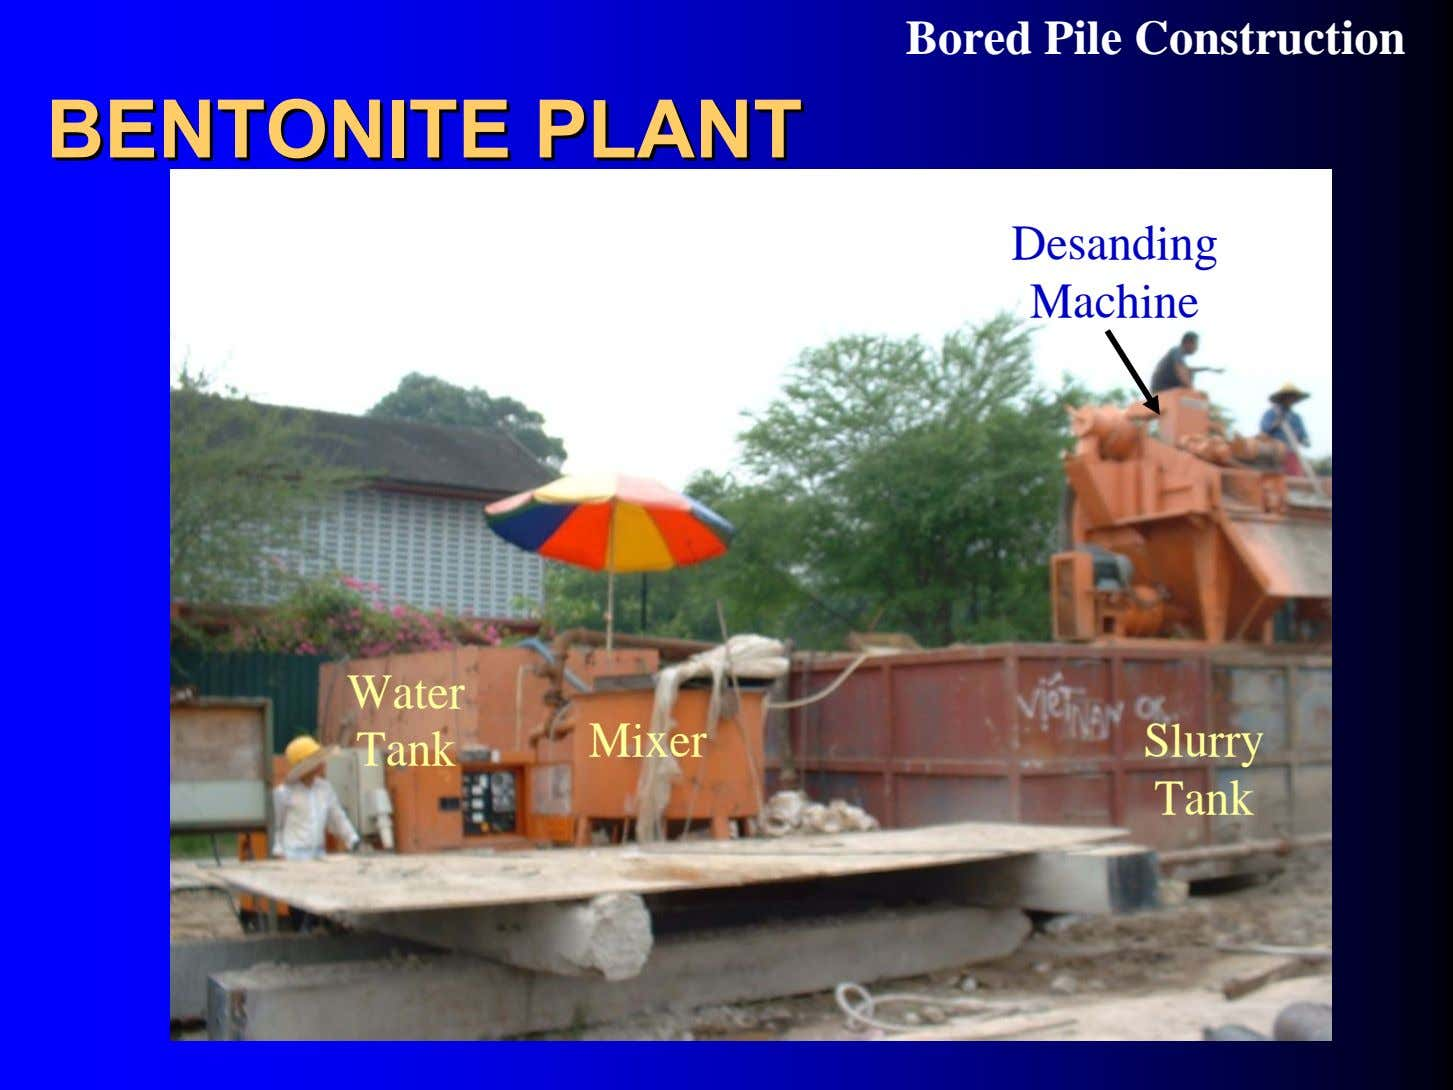 Bored Pile Construction BENTONITEBENTONITE PLANTPLANT Desanding Machine Water Tank Mixer Slurry Tank